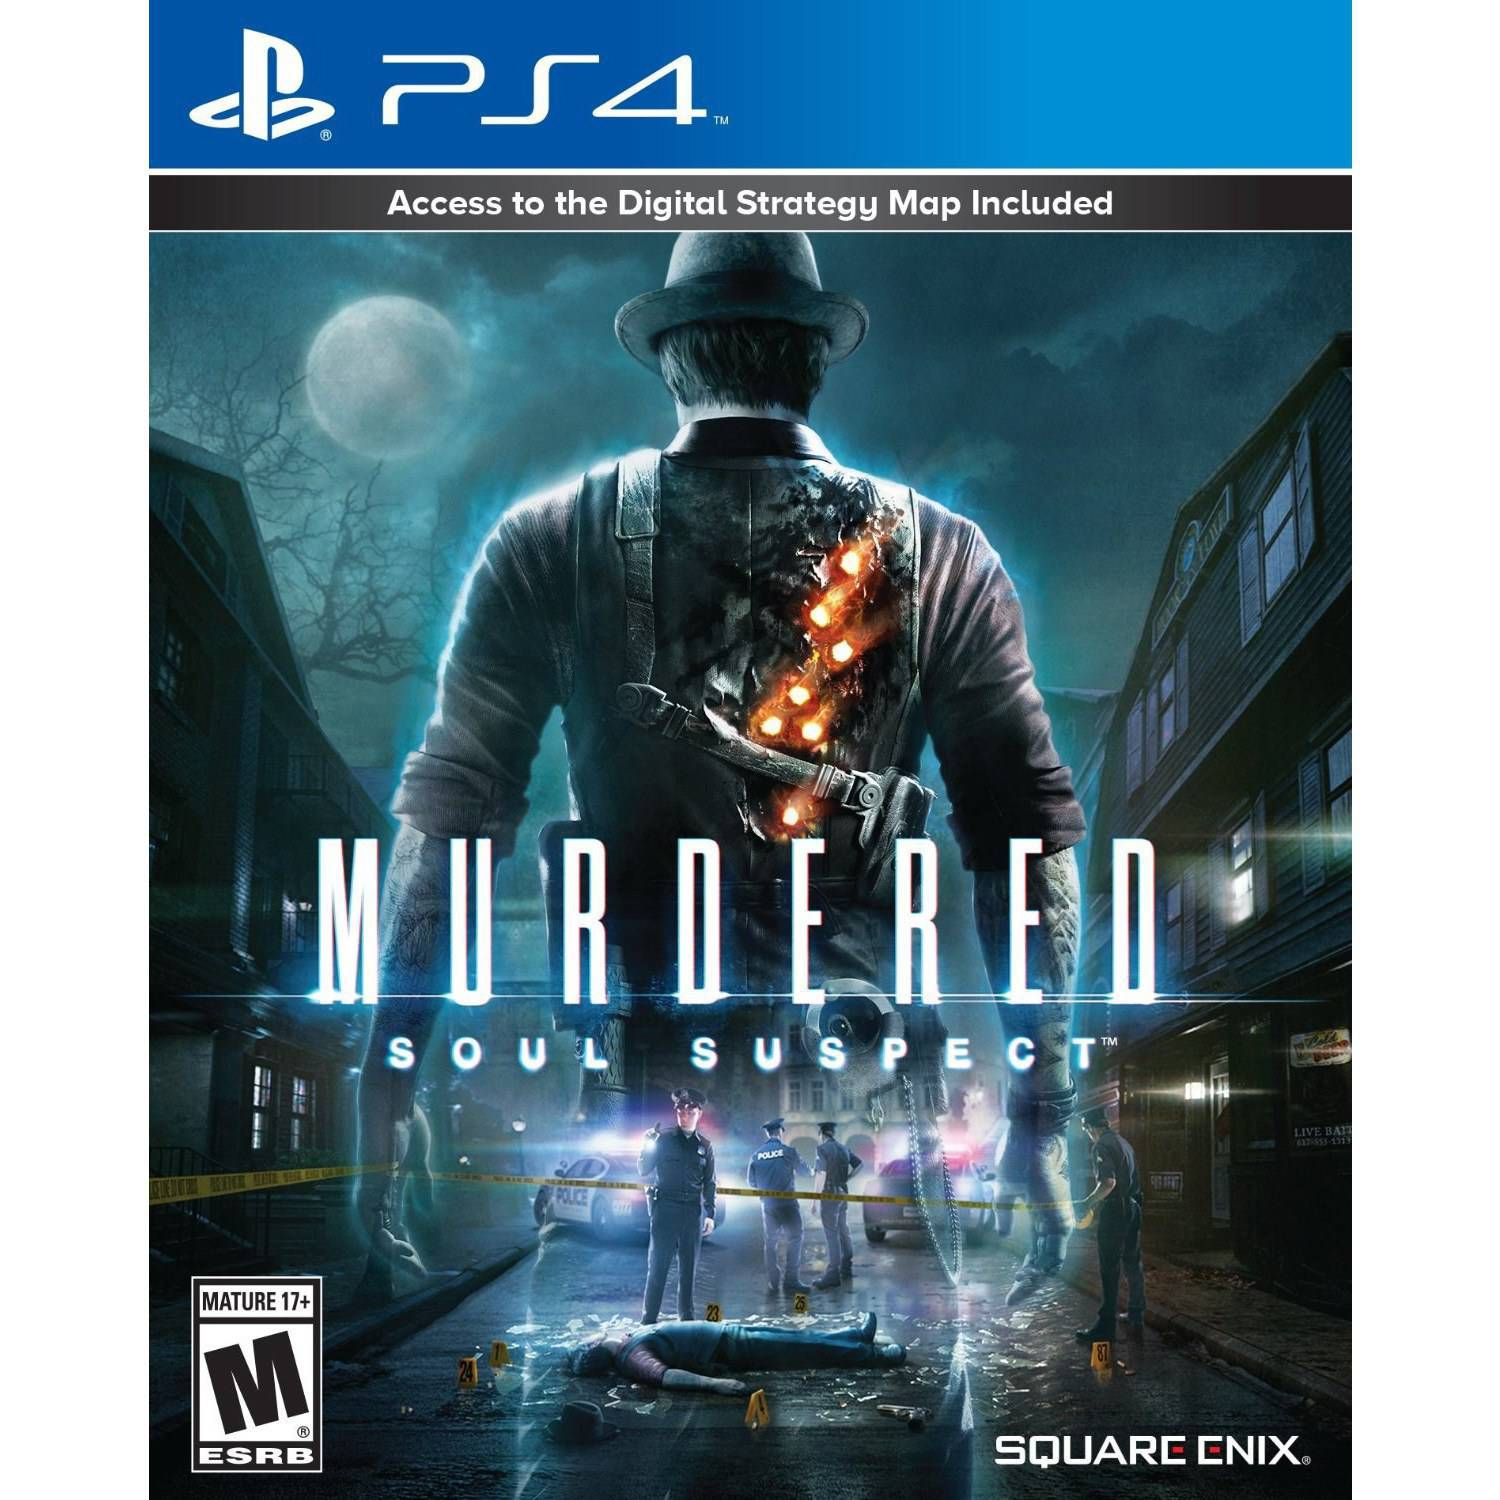 Murdered: Soul Suspect (PS4) - Pre-Owned